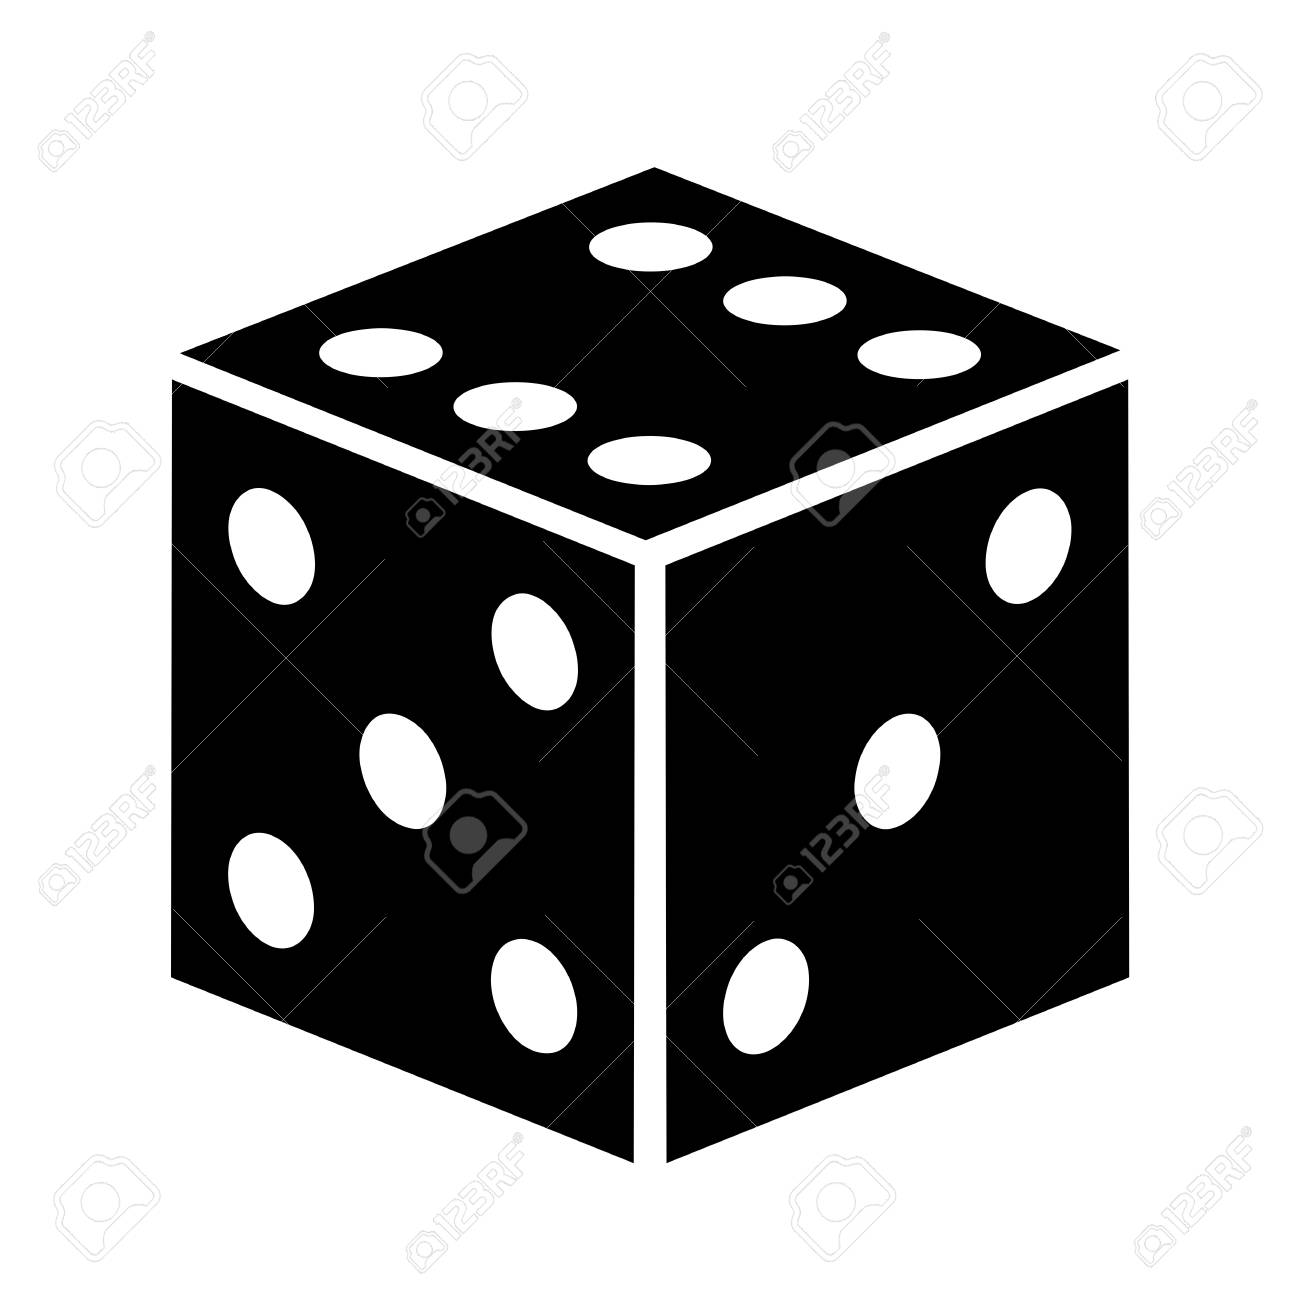 dice vector icon royalty free cliparts vectors and stock rh 123rf com dice vector eps dice vector images